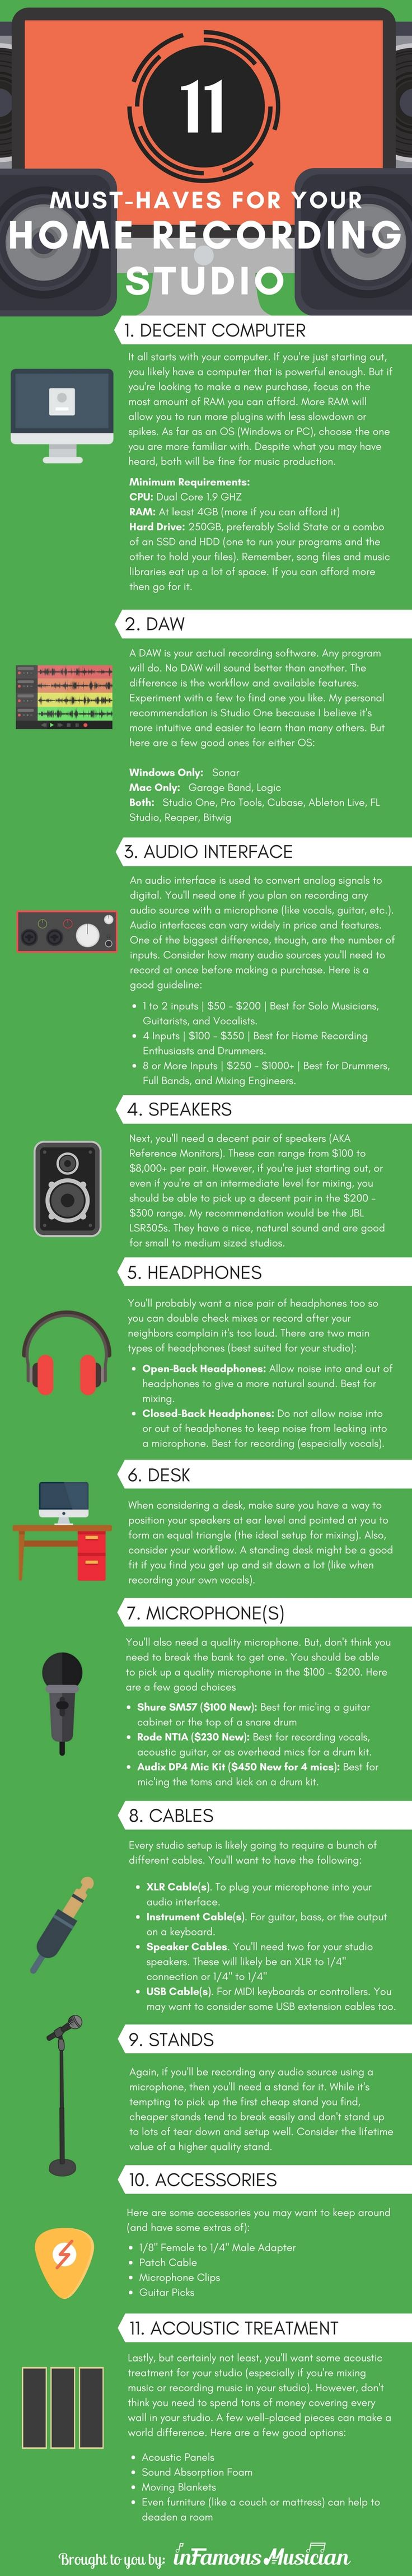 Home Recording Studio Equipment [Infographic] http://www.infamousmusician.com/home-recording-studio-equipment/ #homerecording #homestudio